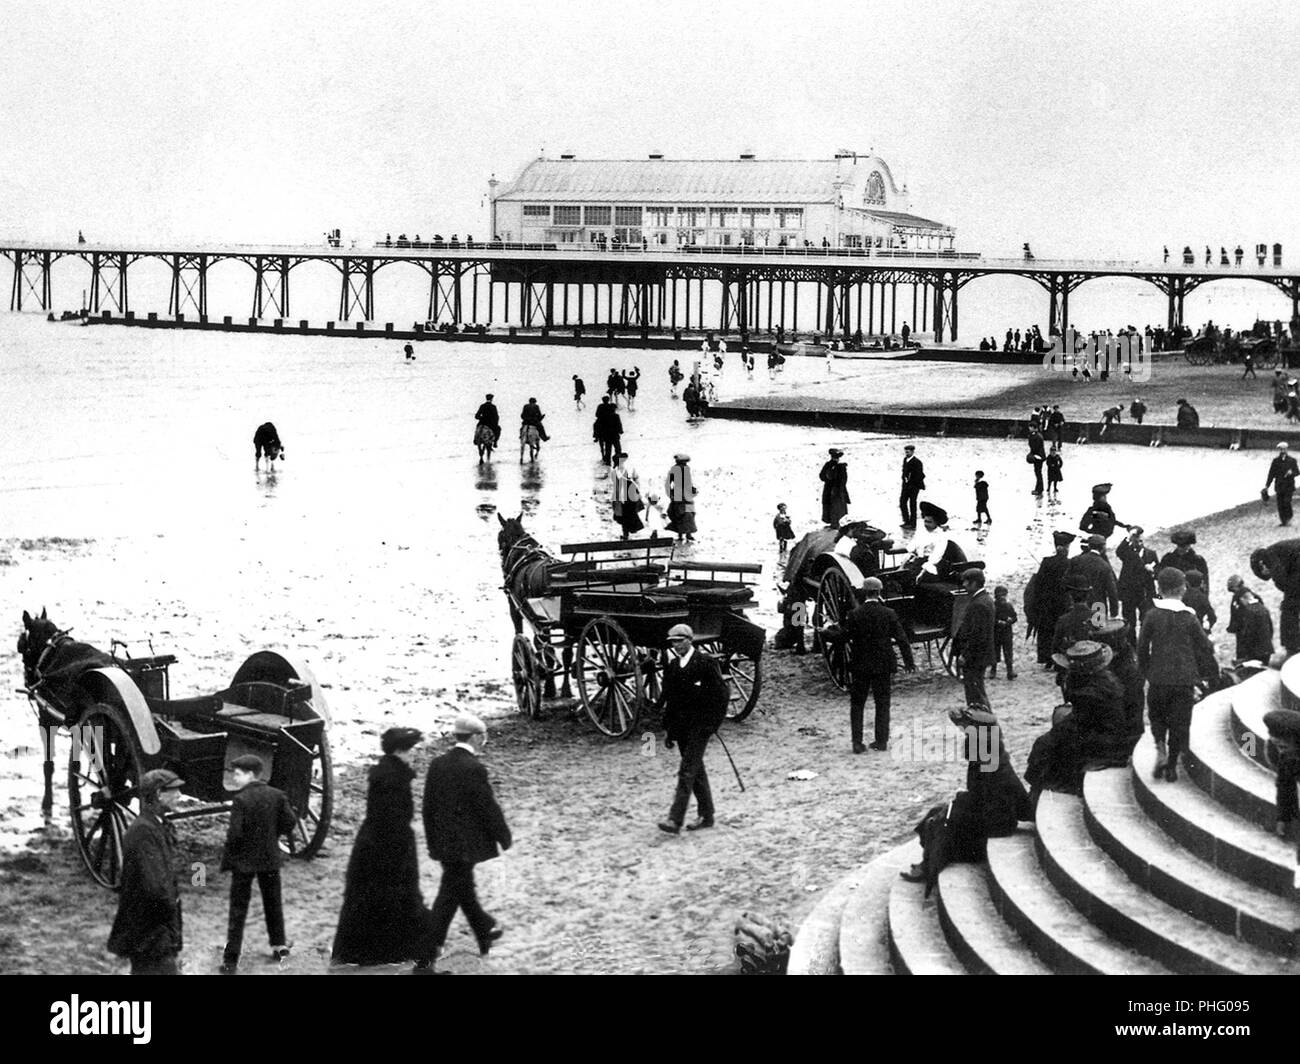 Pier and beach, Cleethorpes, early 1900s - Stock Image